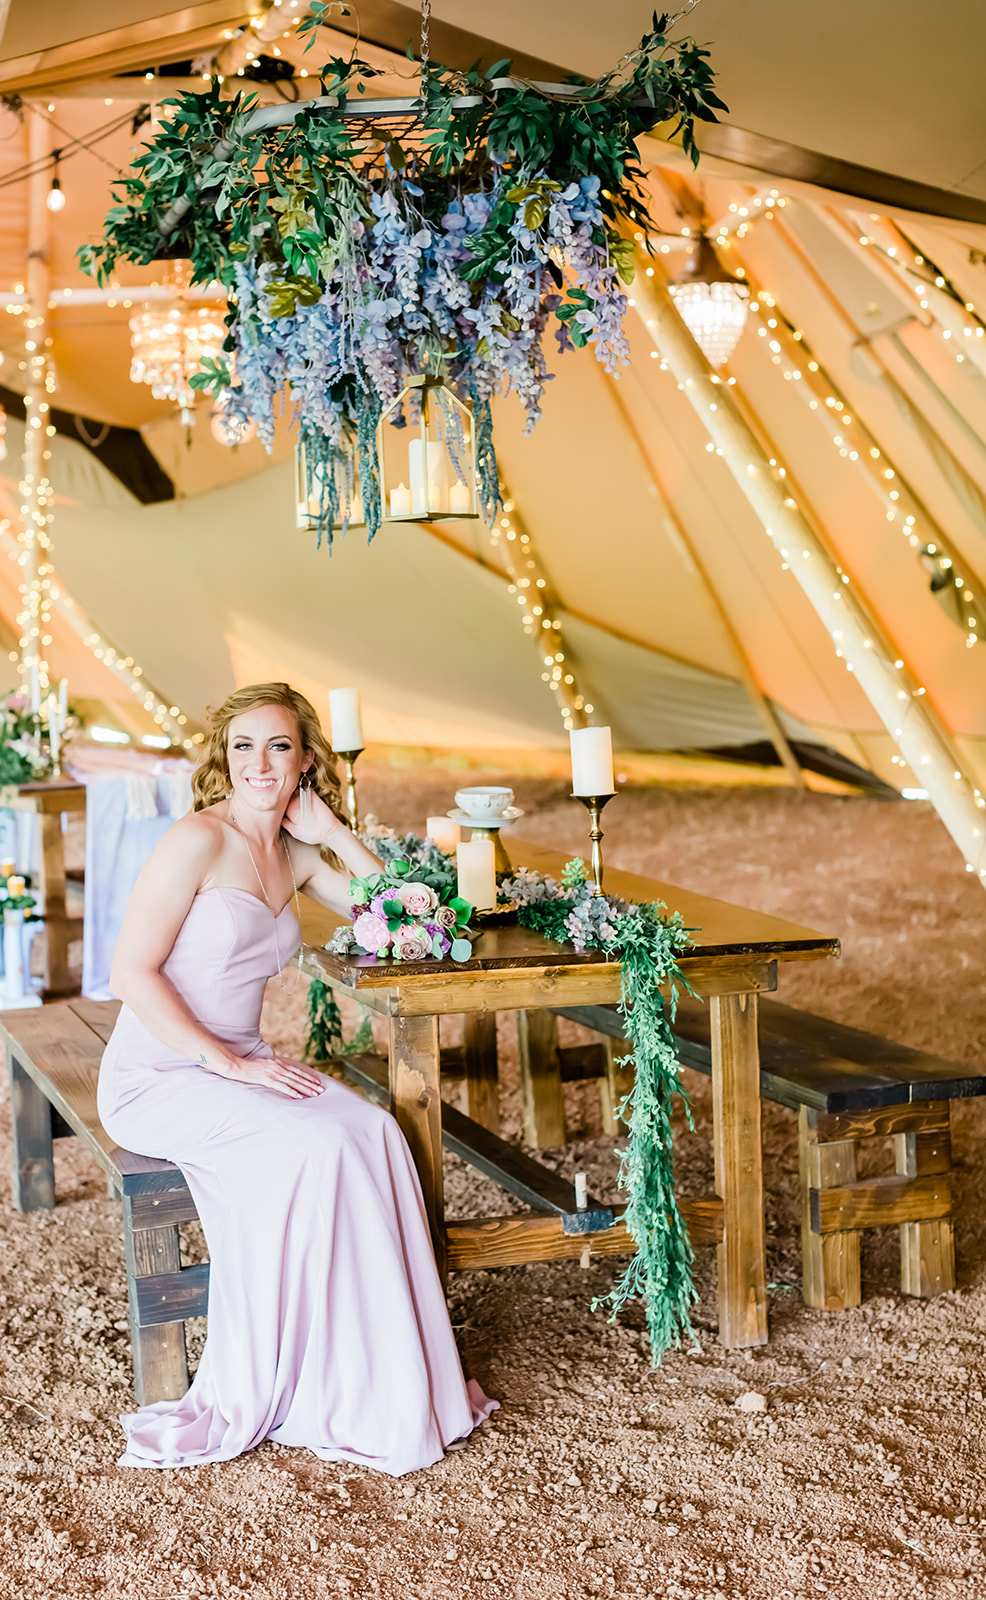 Bridemaid on Farmhouse Wooden Table in Tipi Wedding Festival